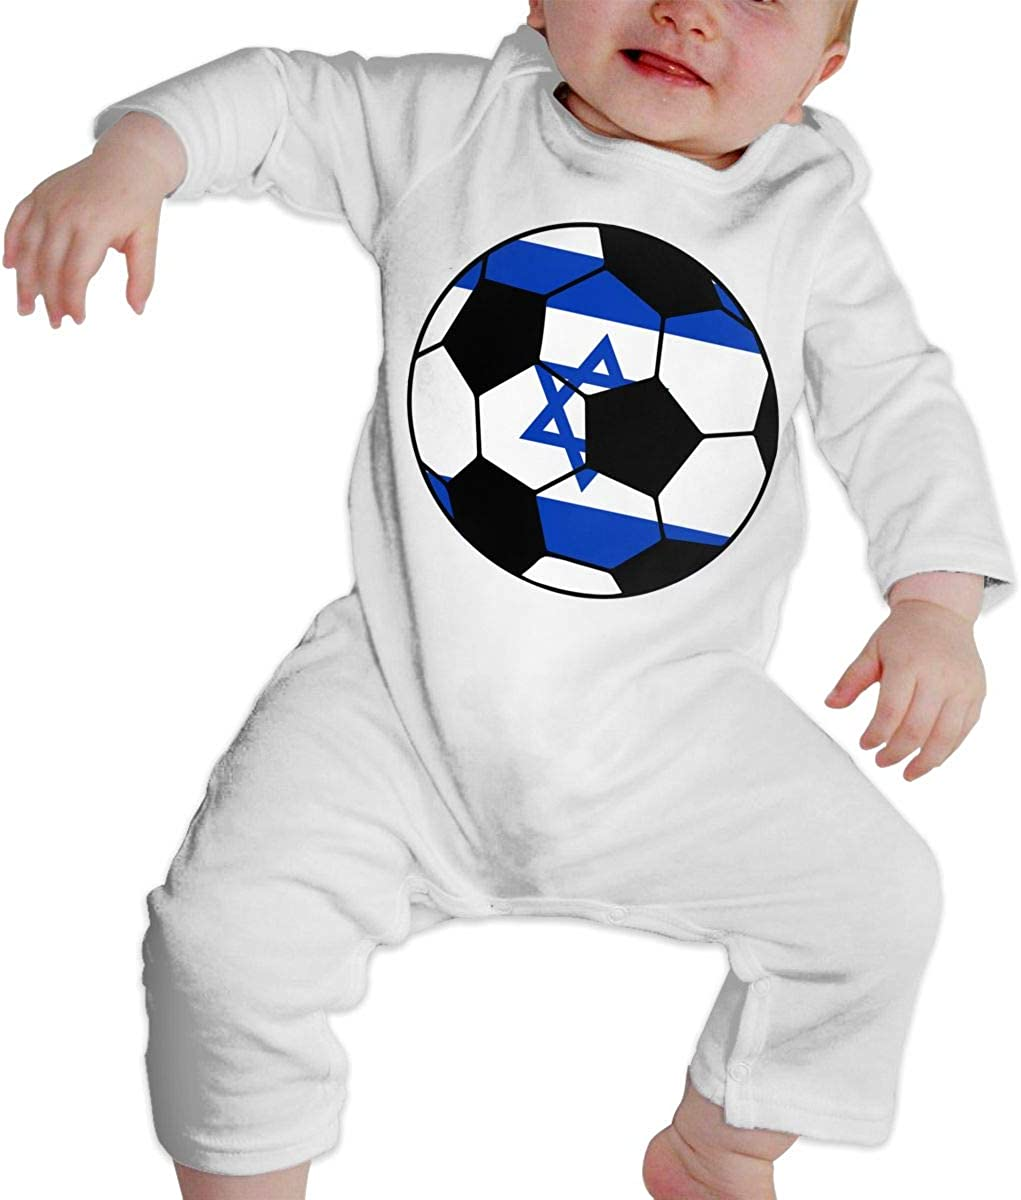 YELTY6F Israel Soccer Flag Printed Baby Bodysuit Long Sleeve Outfits White